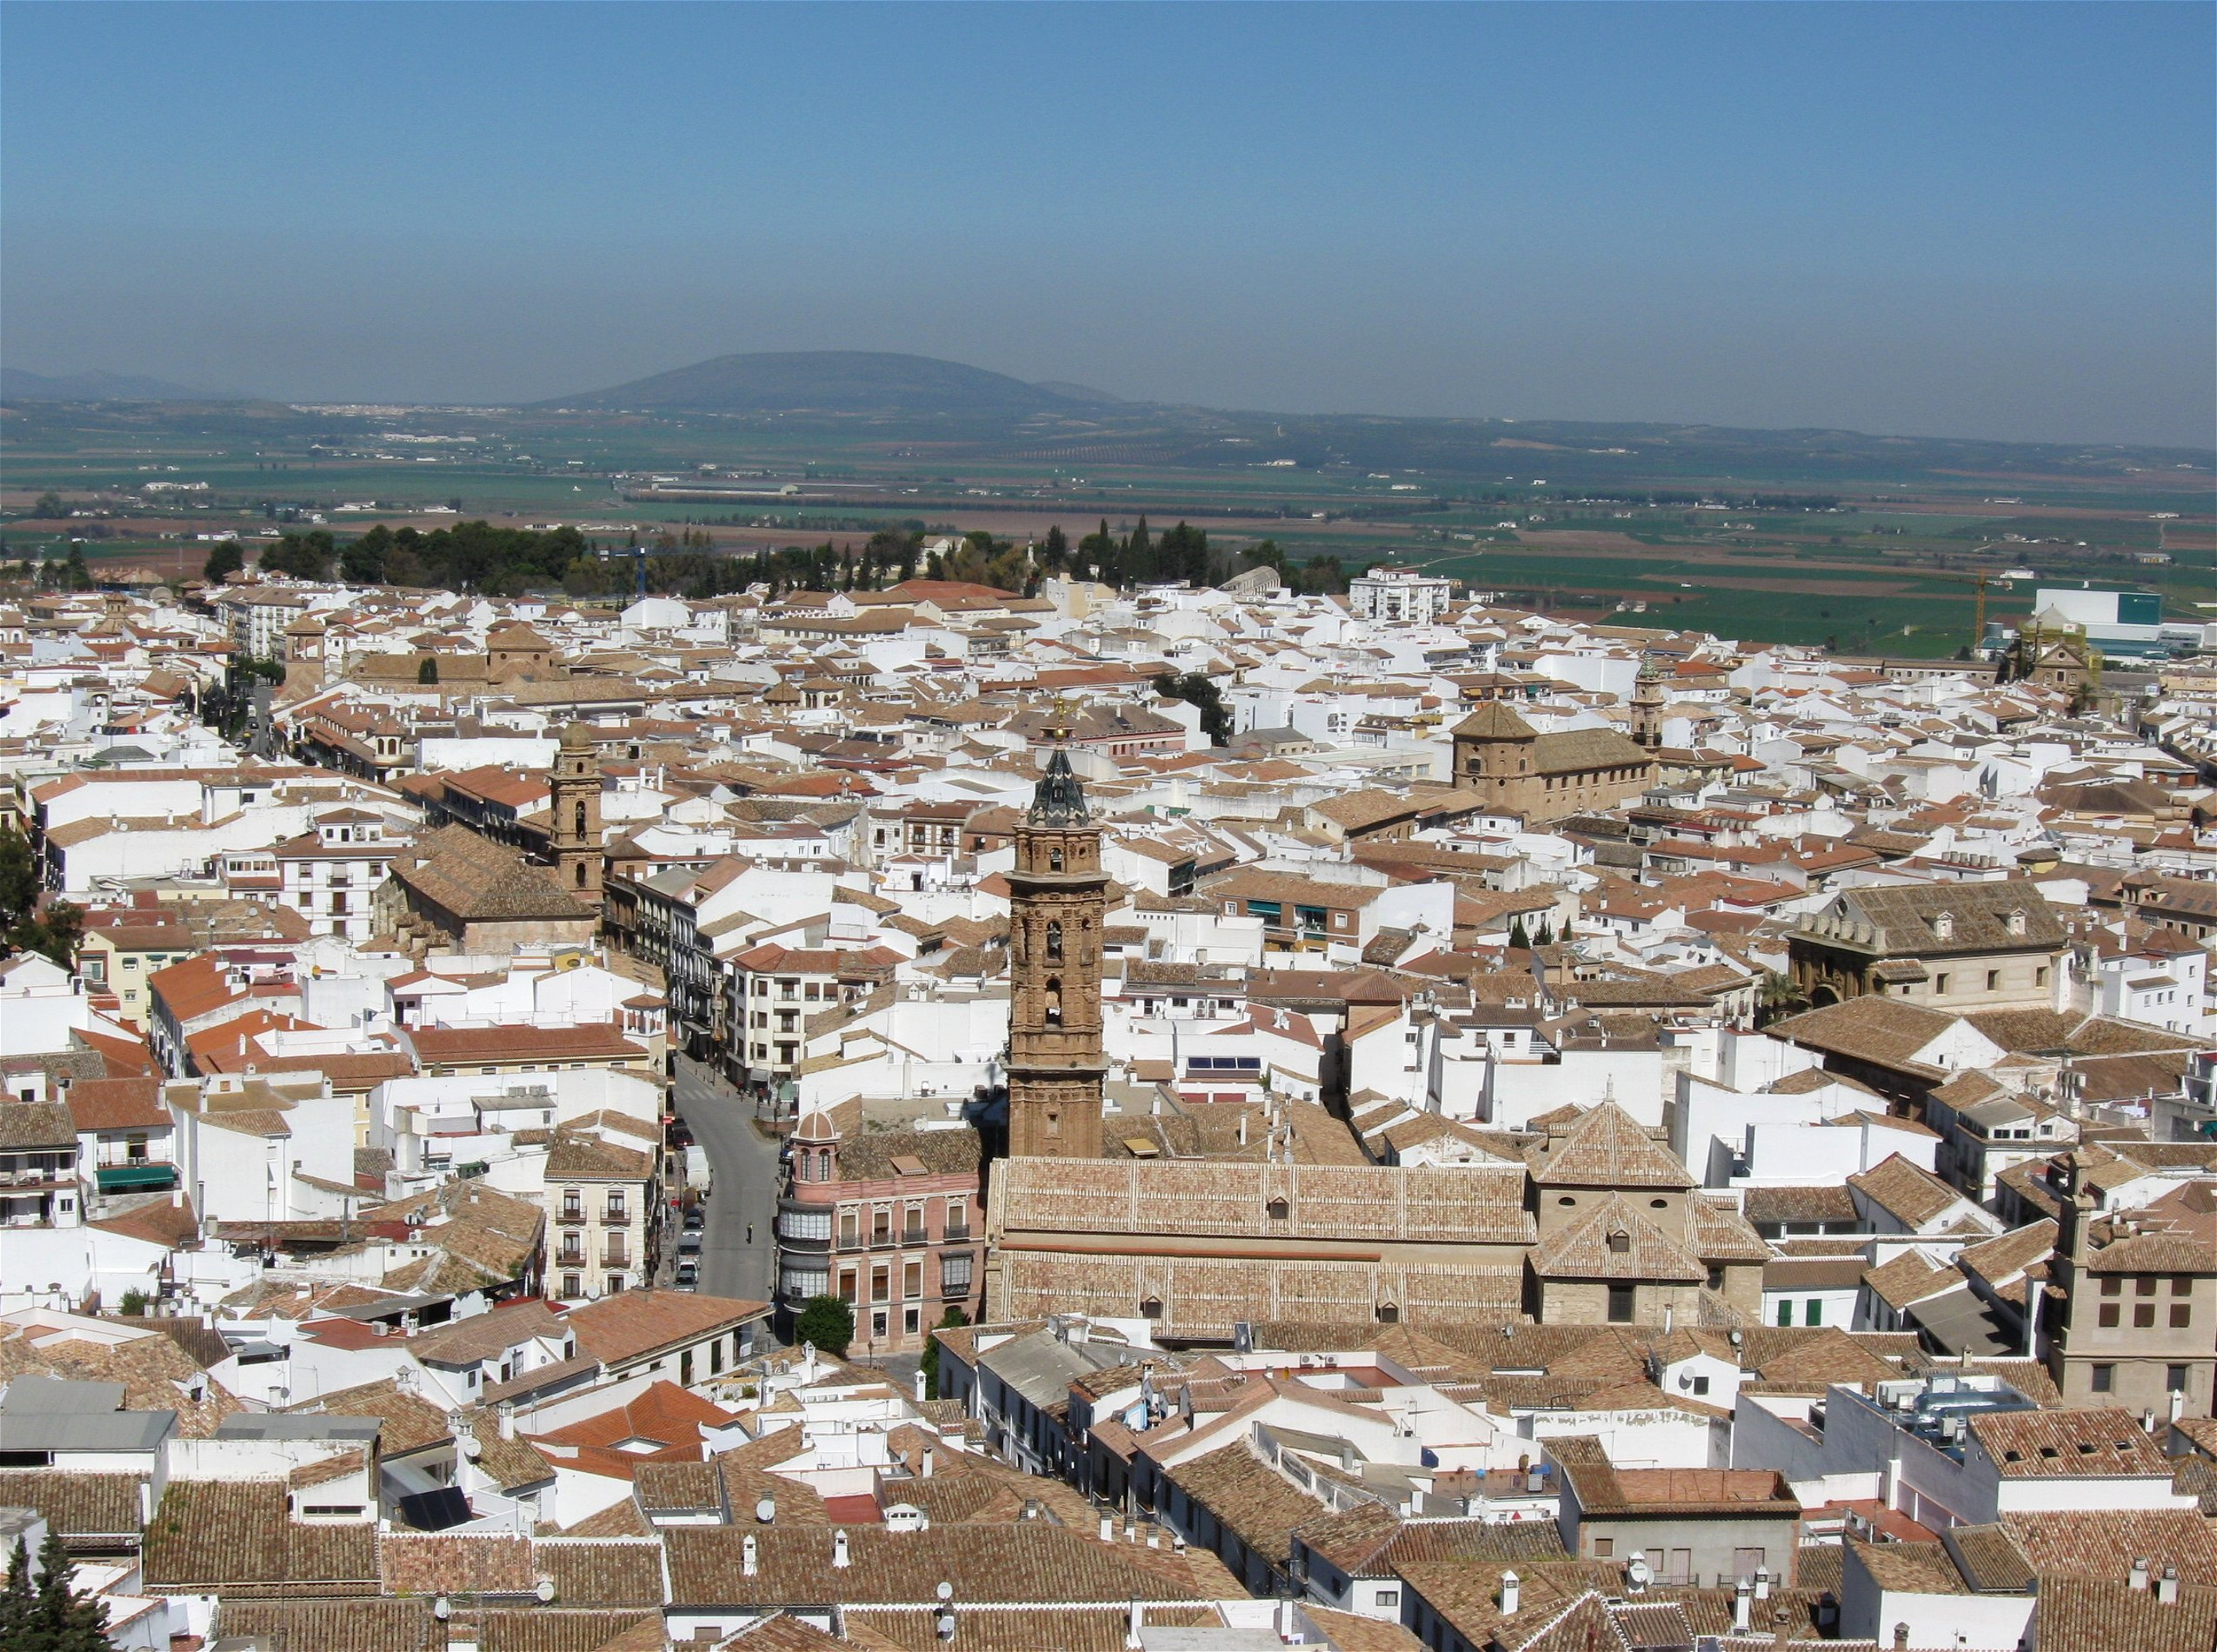 Depiction of Antequera